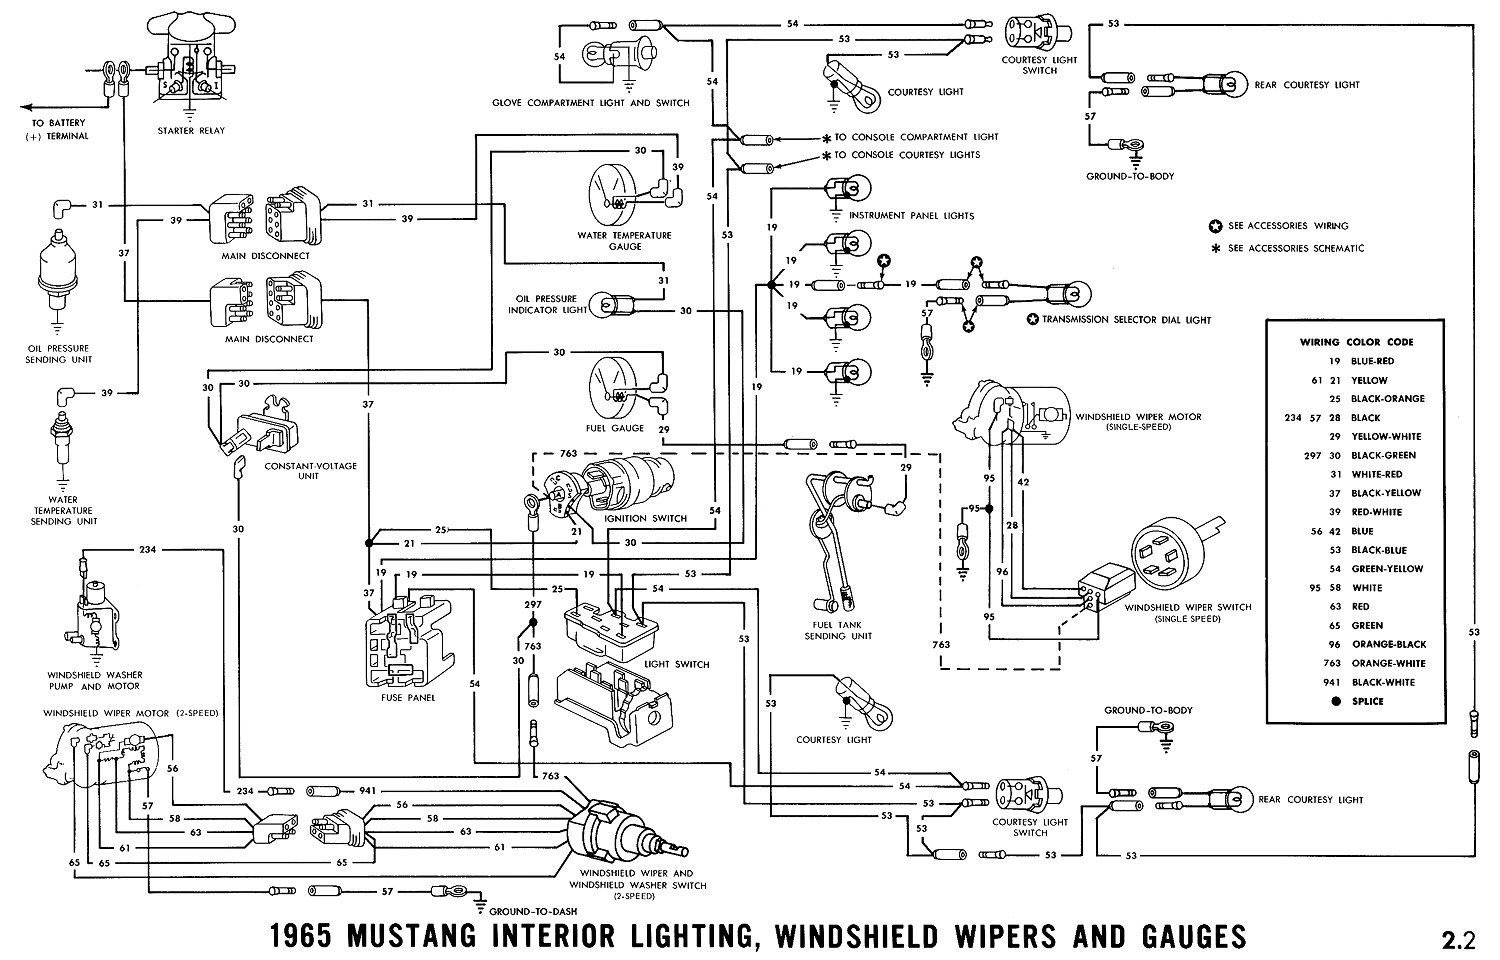 1965 mustang wiring diagram wiring diagram rh blaknwyt co mustang wiring diagram 1966 mustang wiring diagram 2016